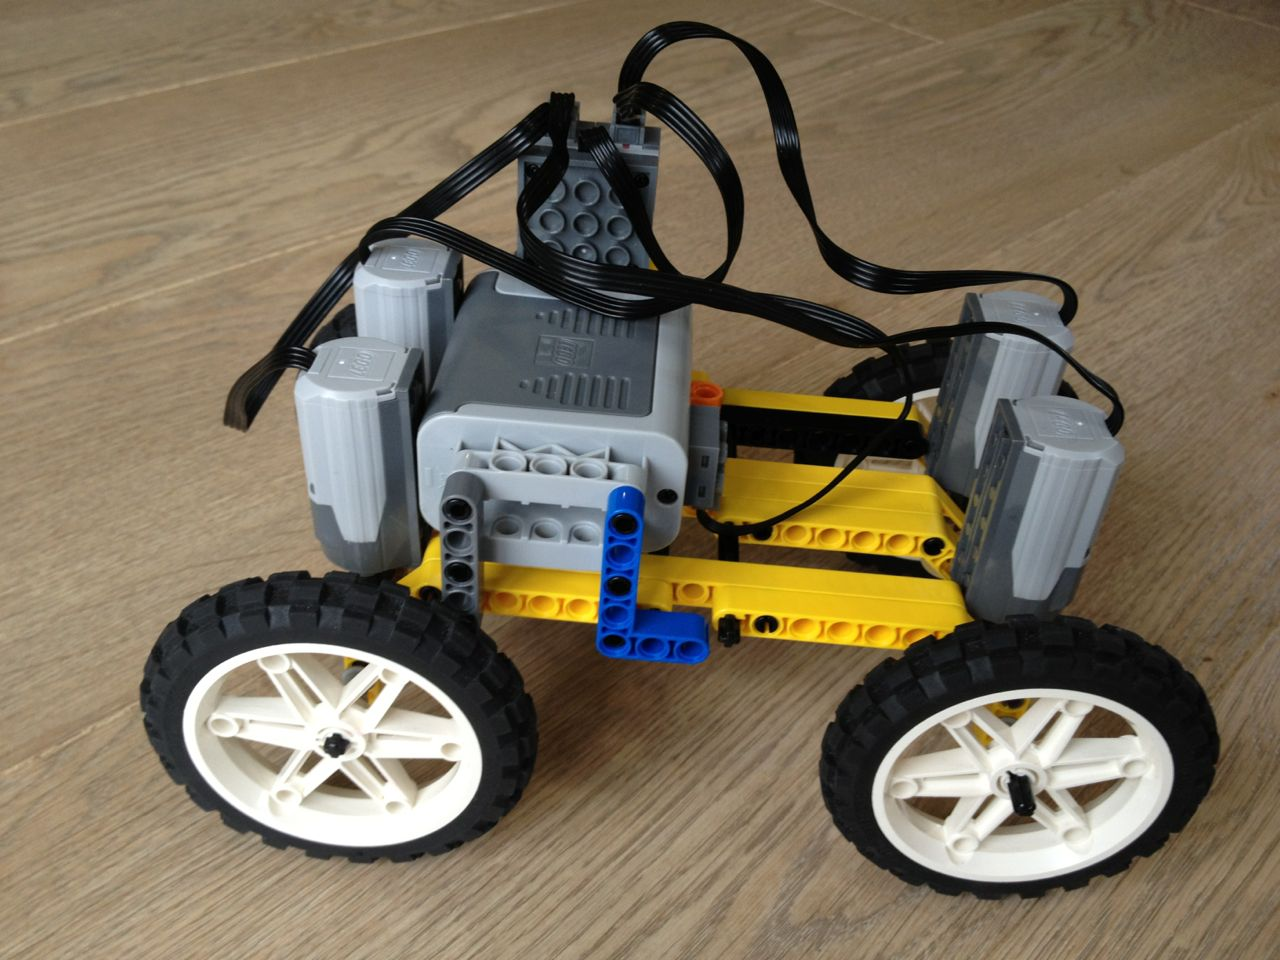 Building an off road car with LEGO Technic | Christoph Bartneck, Ph D